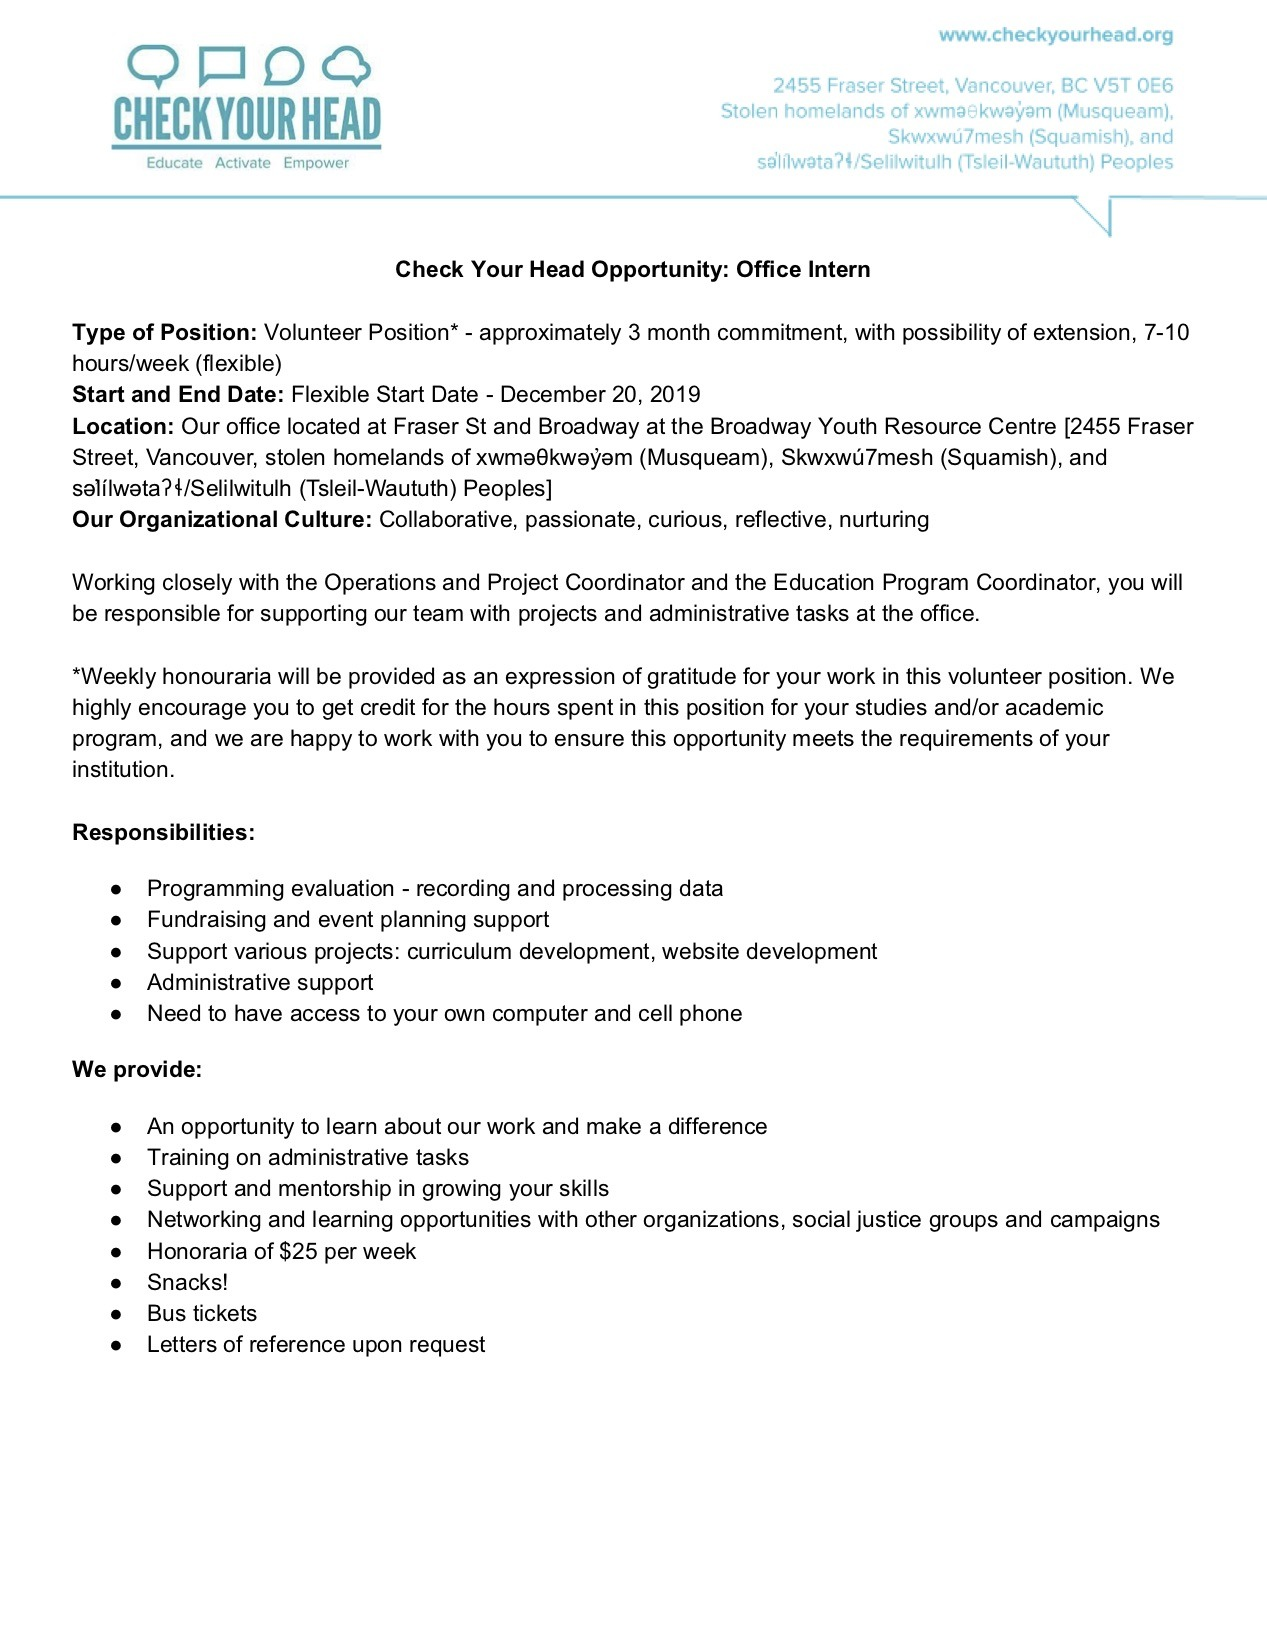 Check Your Head Opportunity - Office Intern